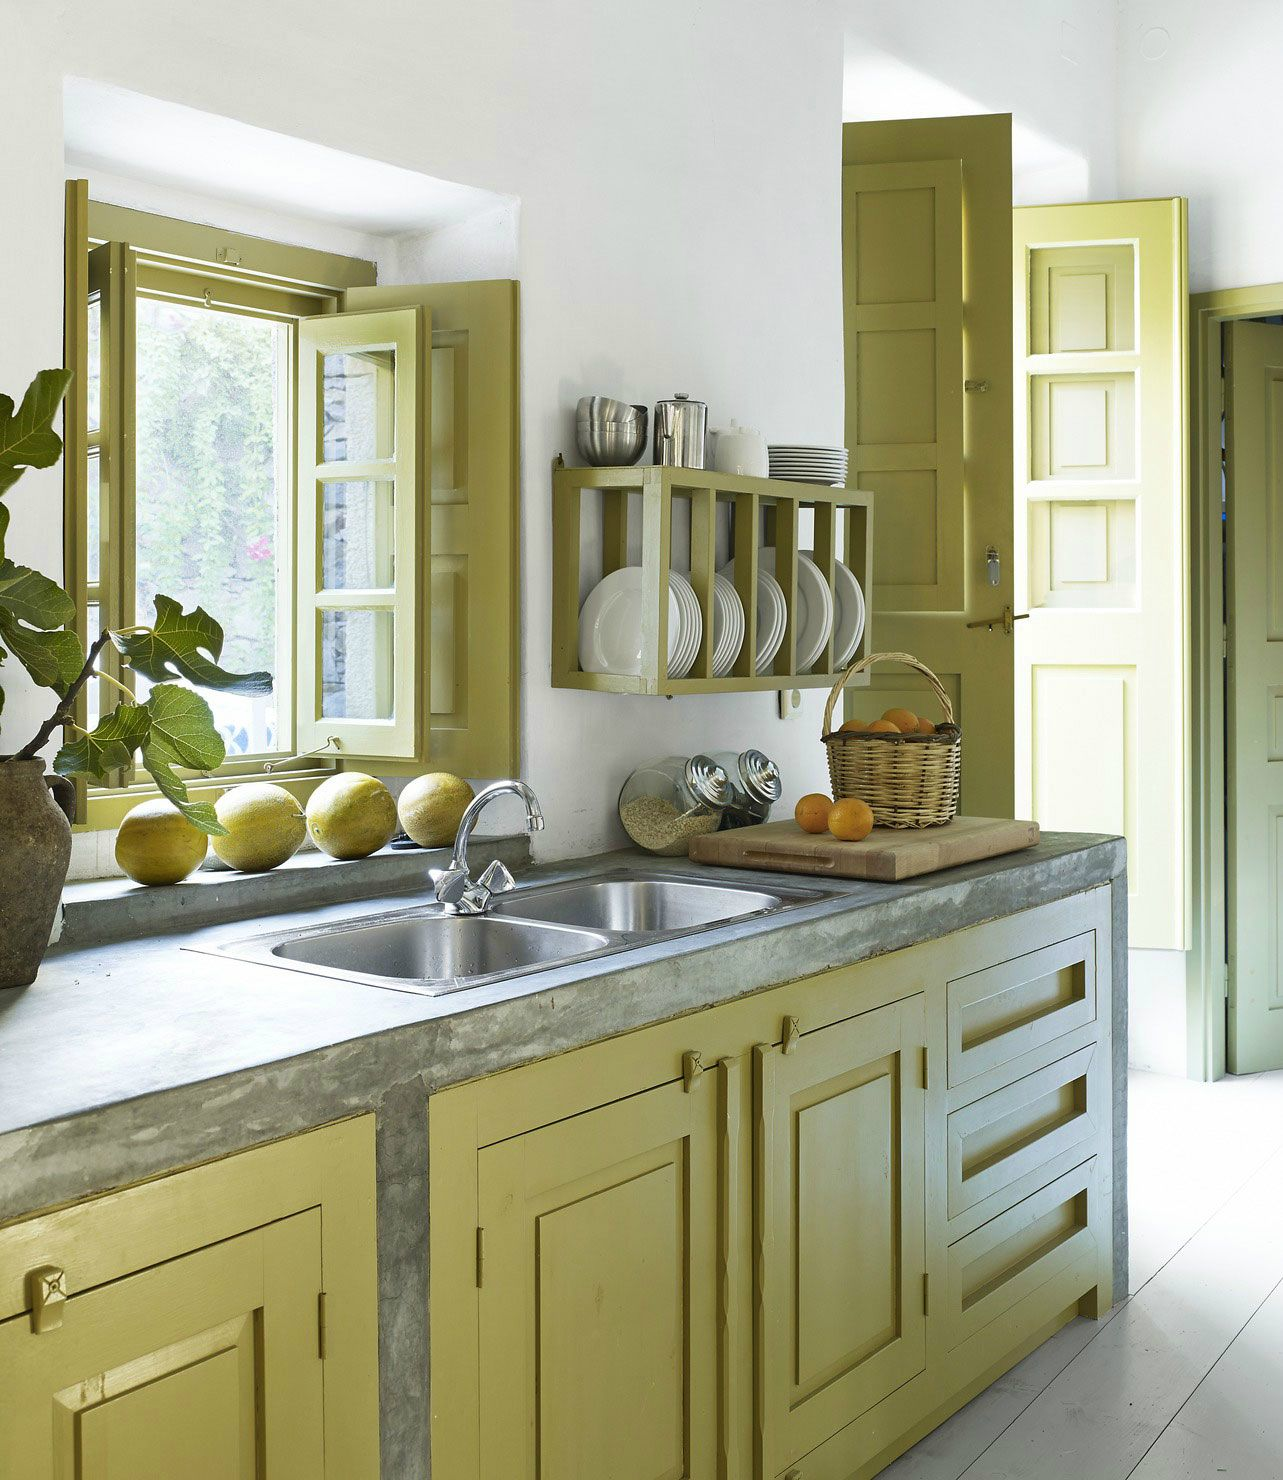 Elle decor predicts the color trends for 2017 yellow for Small kitchen ideas